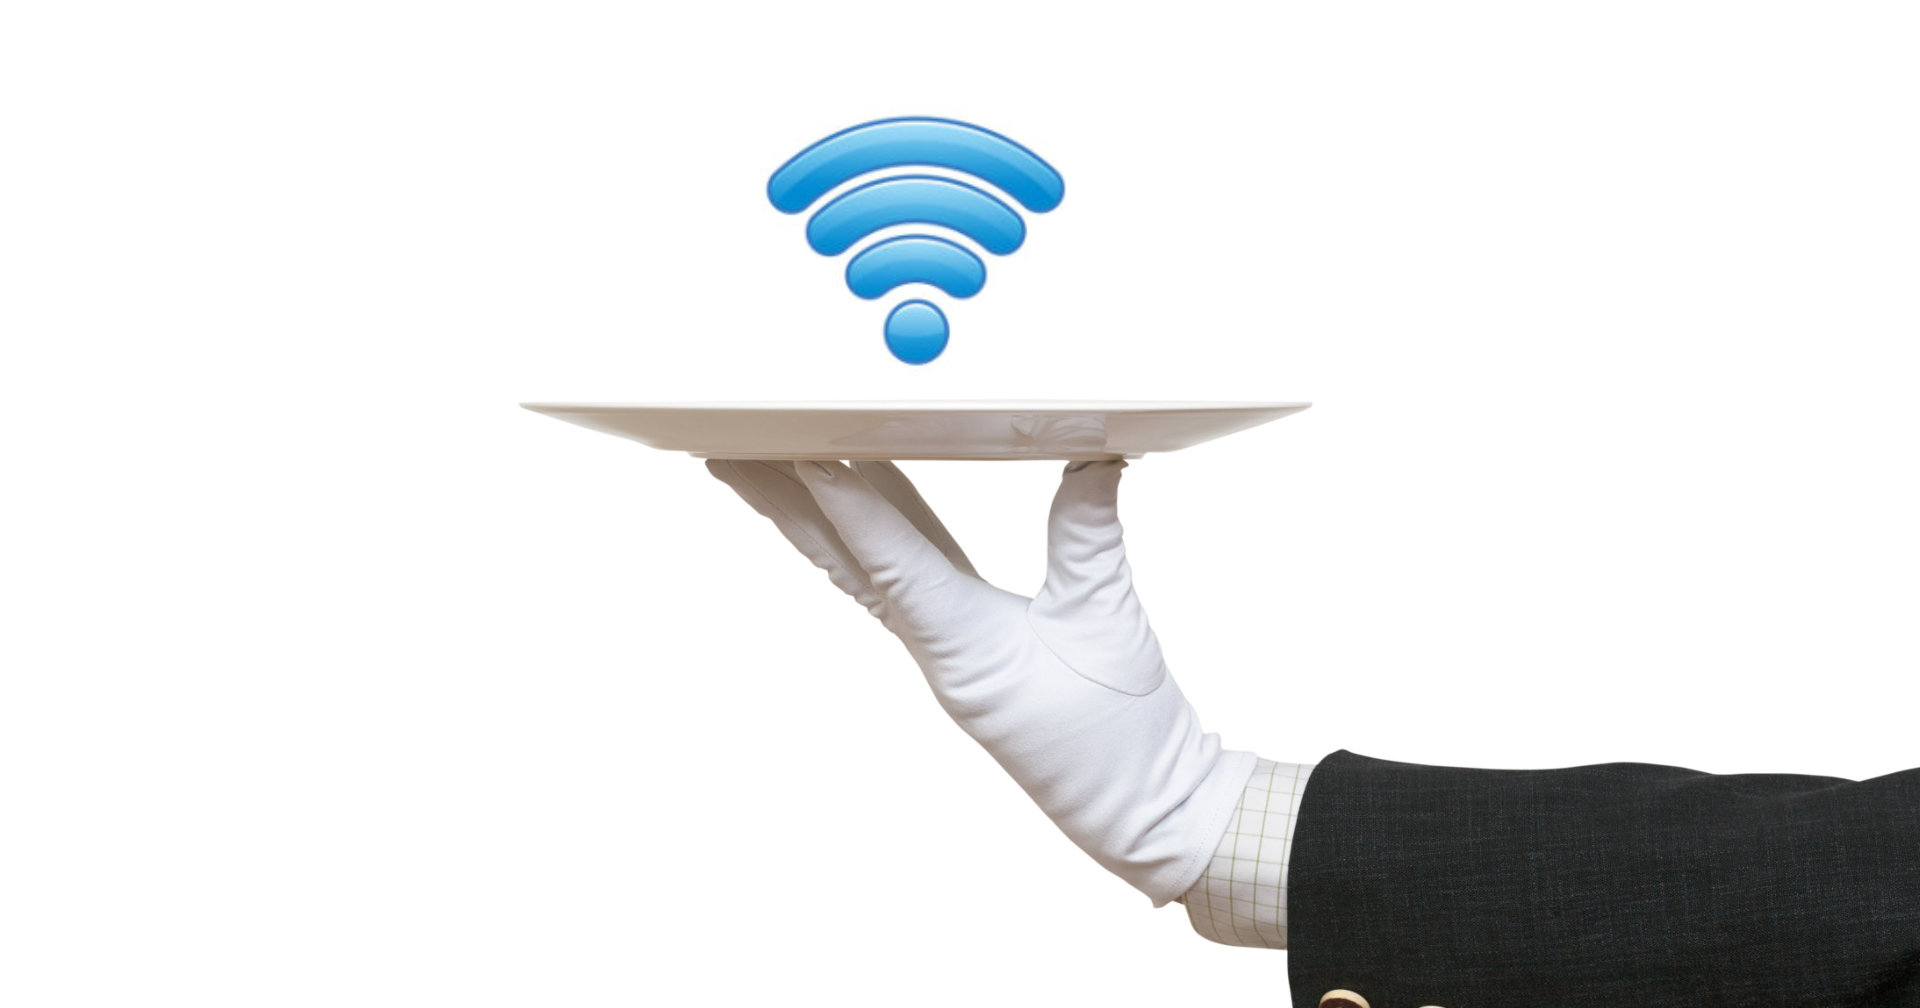 hand holding plate with wifi logo